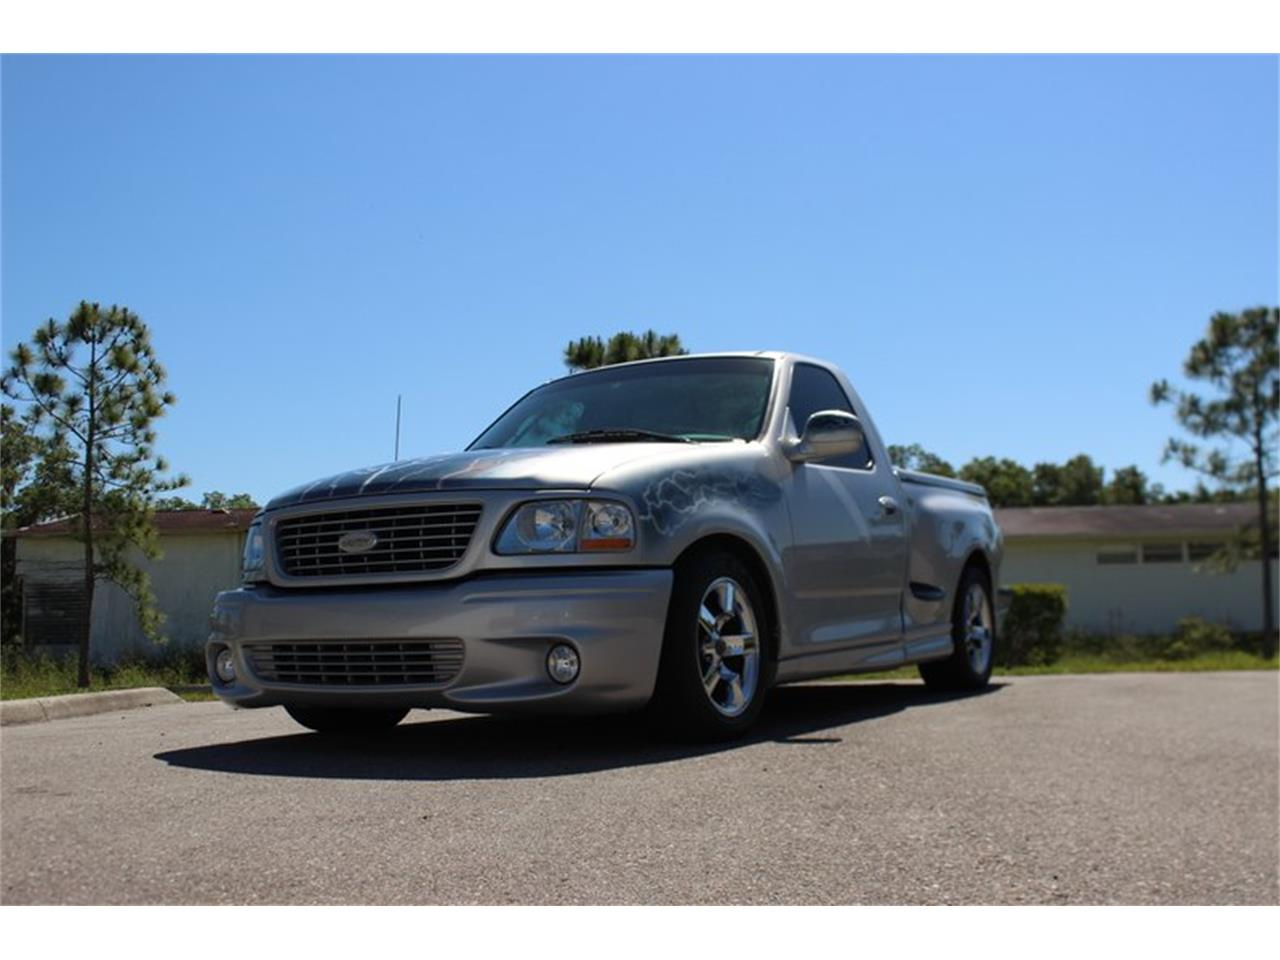 2002 Ford Lightning for sale in Palmetto, FL – photo 40